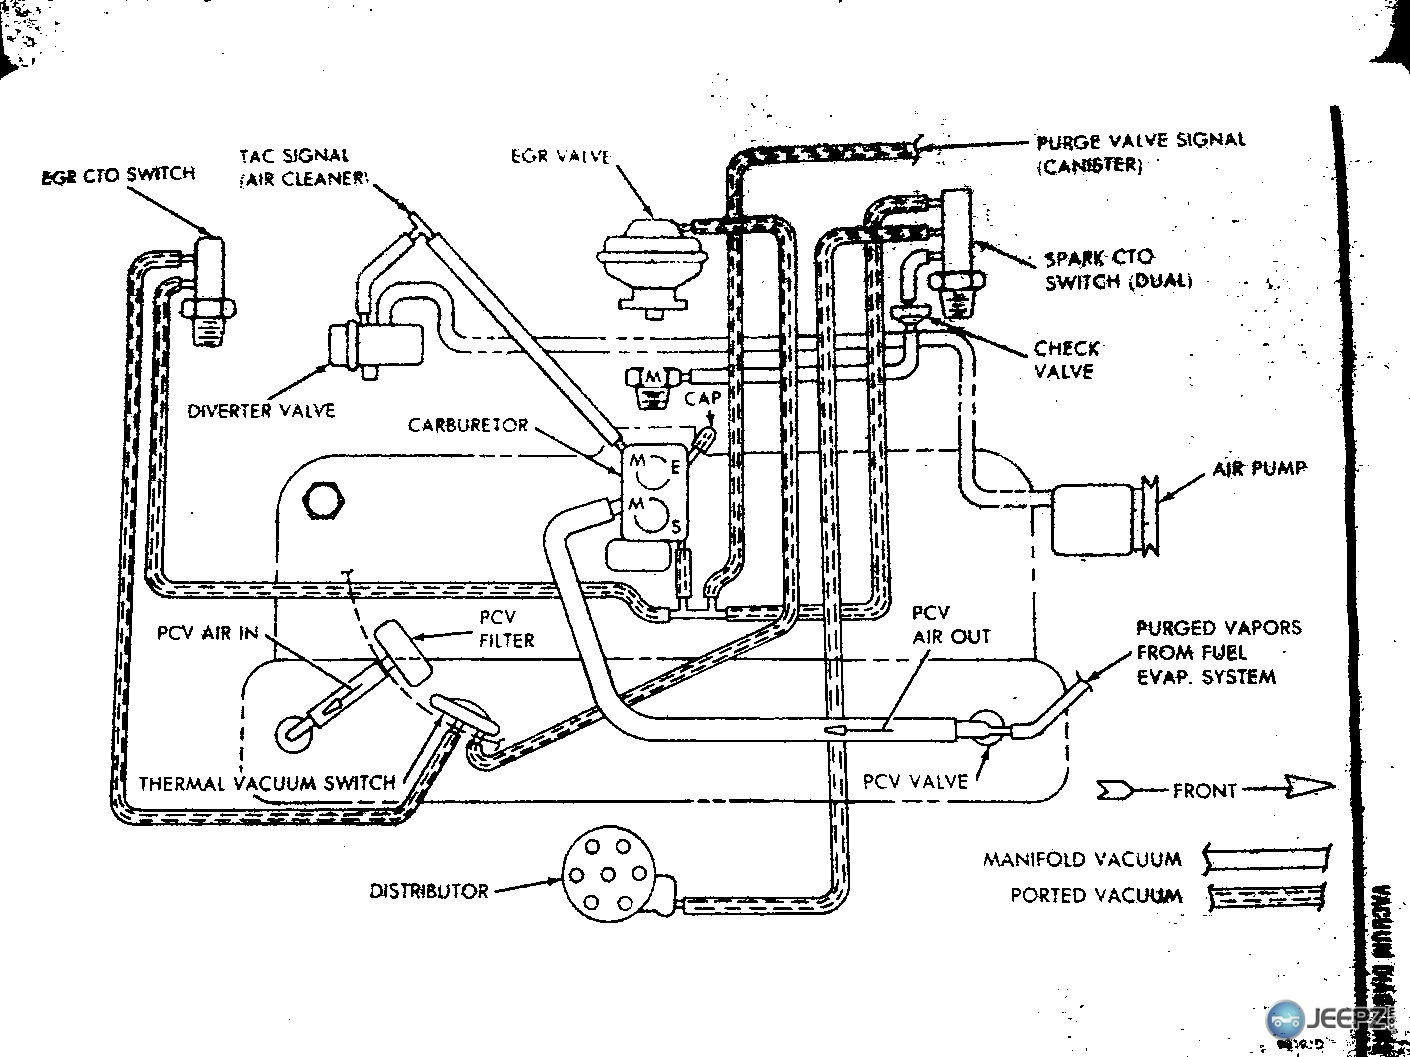 Diagram Drake Wiring Chiller Estq60s2 Library 1980 Mustang Ignition 1989 Vacuum Data U2022 Rh 144 202 108 125